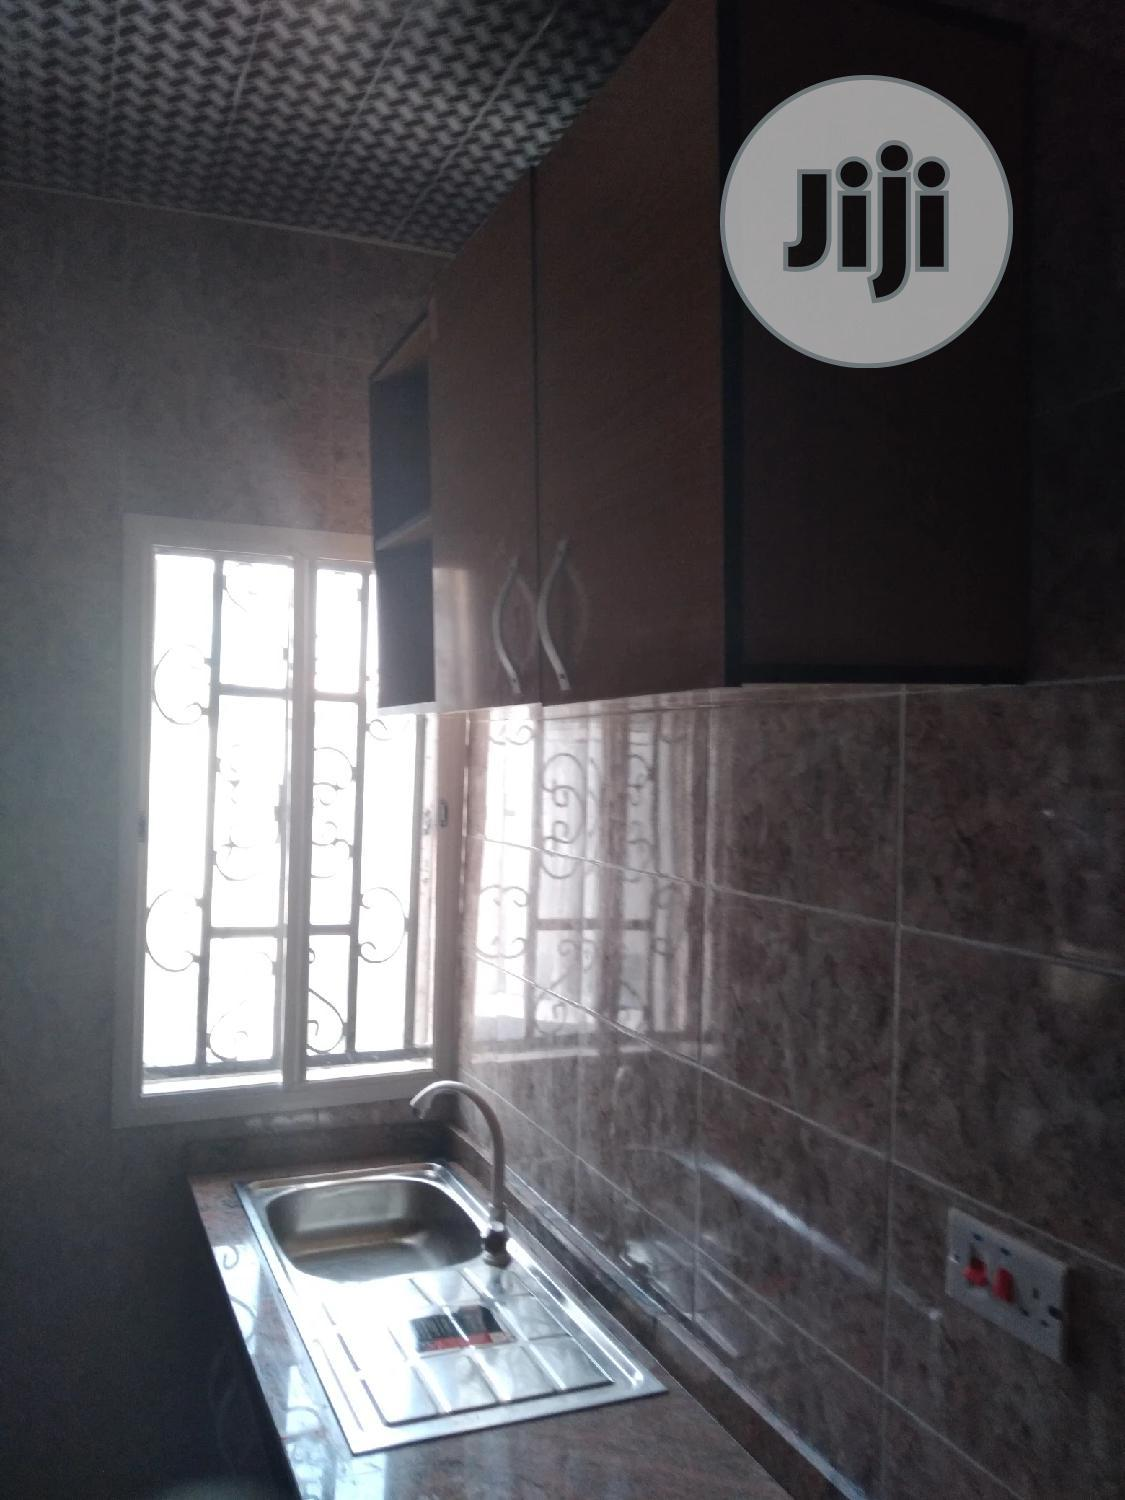 Executive Mini Flat/2 Bedroom Flat Tolet With Water Heater | Houses & Apartments For Rent for sale in Ikorodu, Lagos State, Nigeria